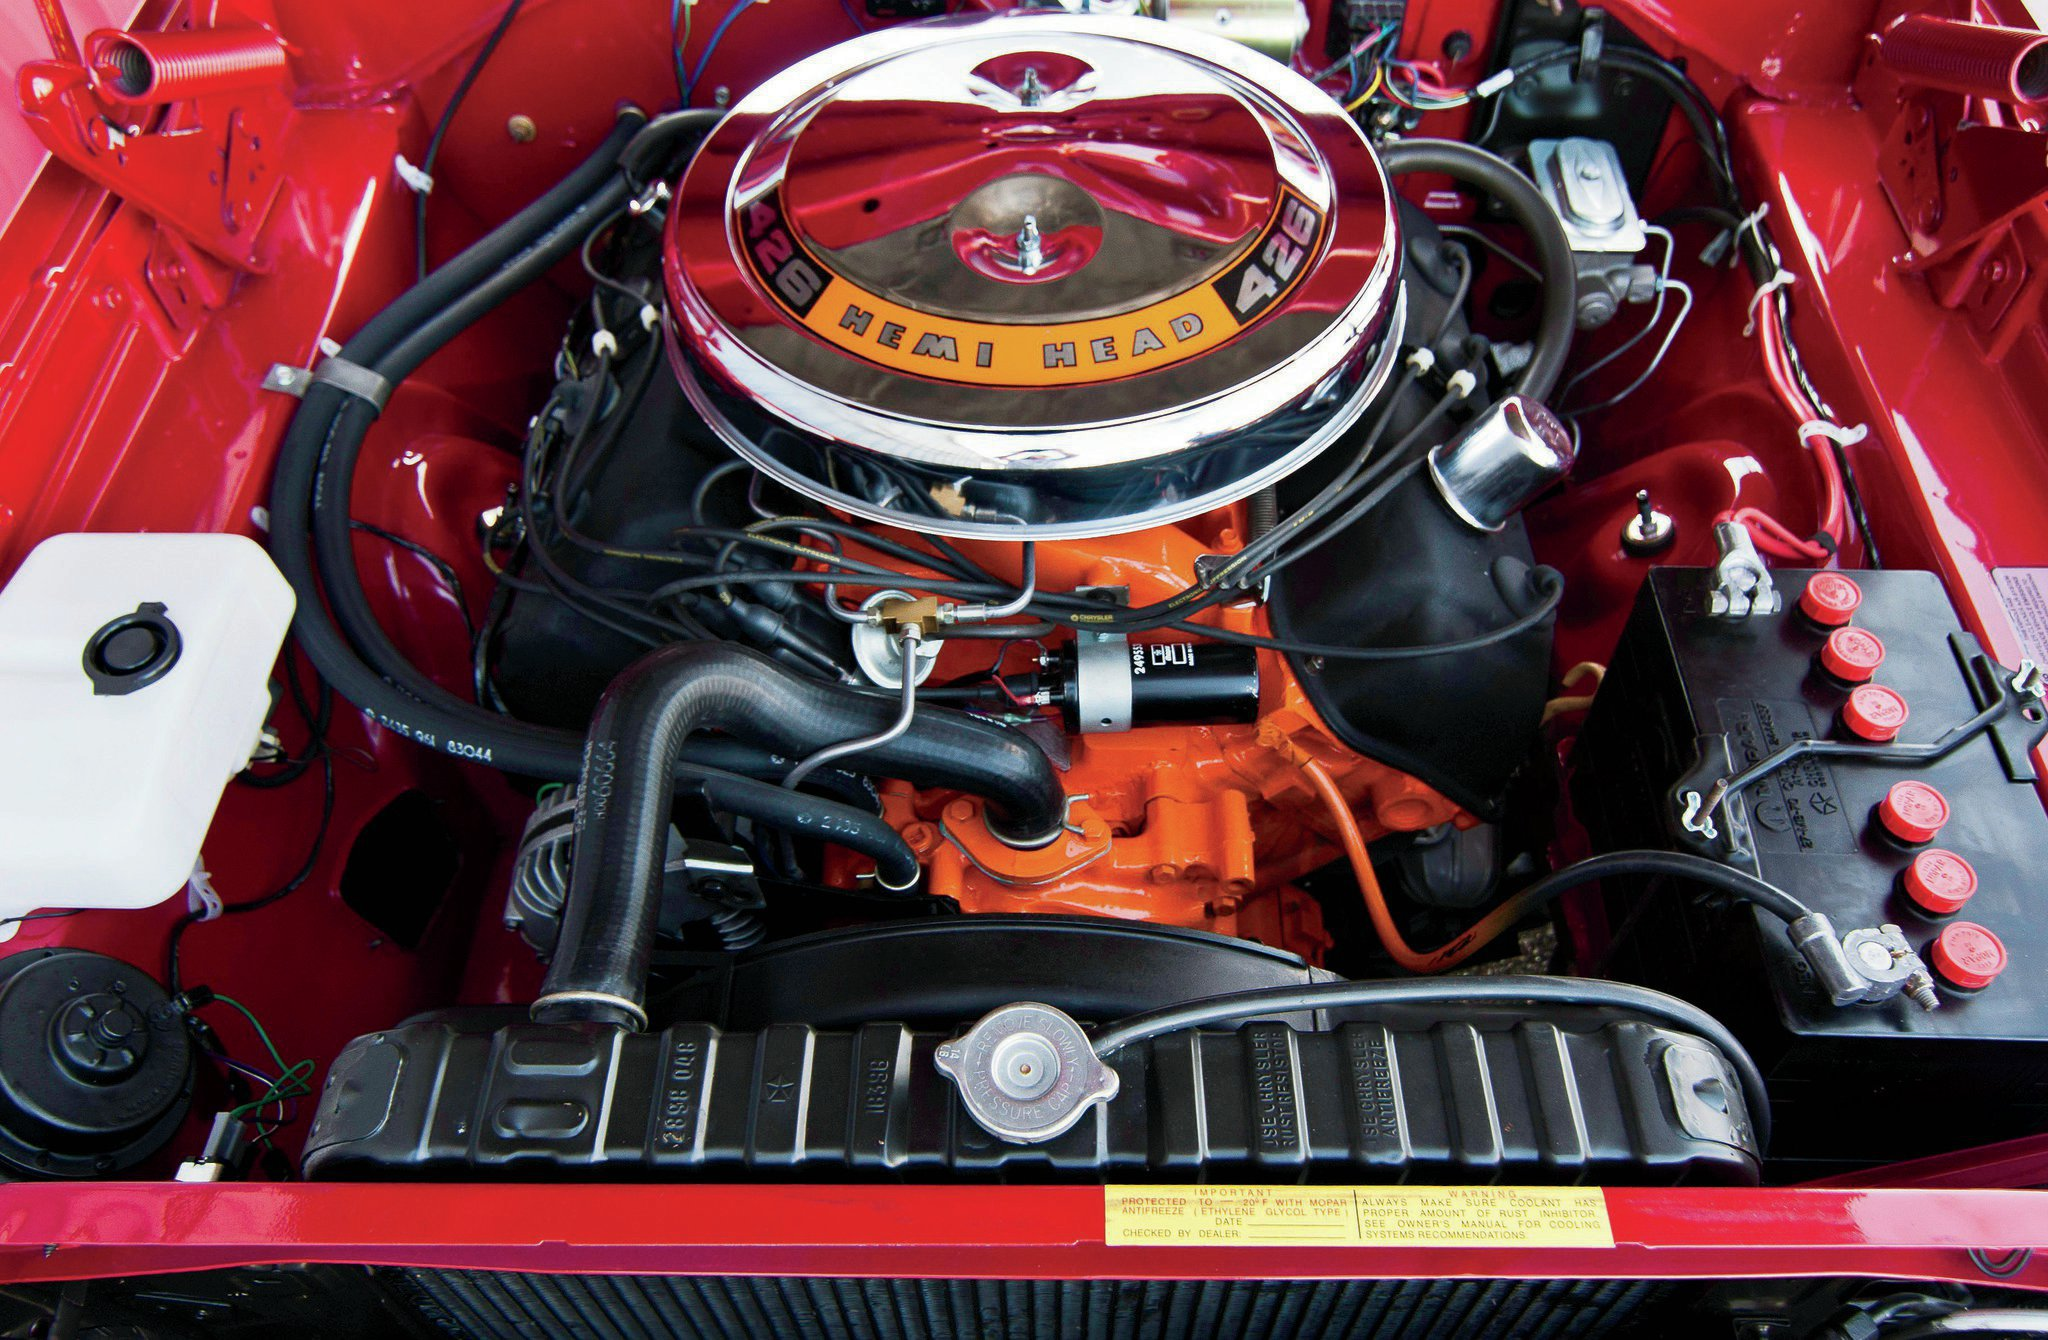 The '68 Road Runner came standard with a 383ci/335hp engine, an ambitious motor with a camshaft lifted from the 440. The only engine option for the '68 Road Runner was the $714.30 Hemi.